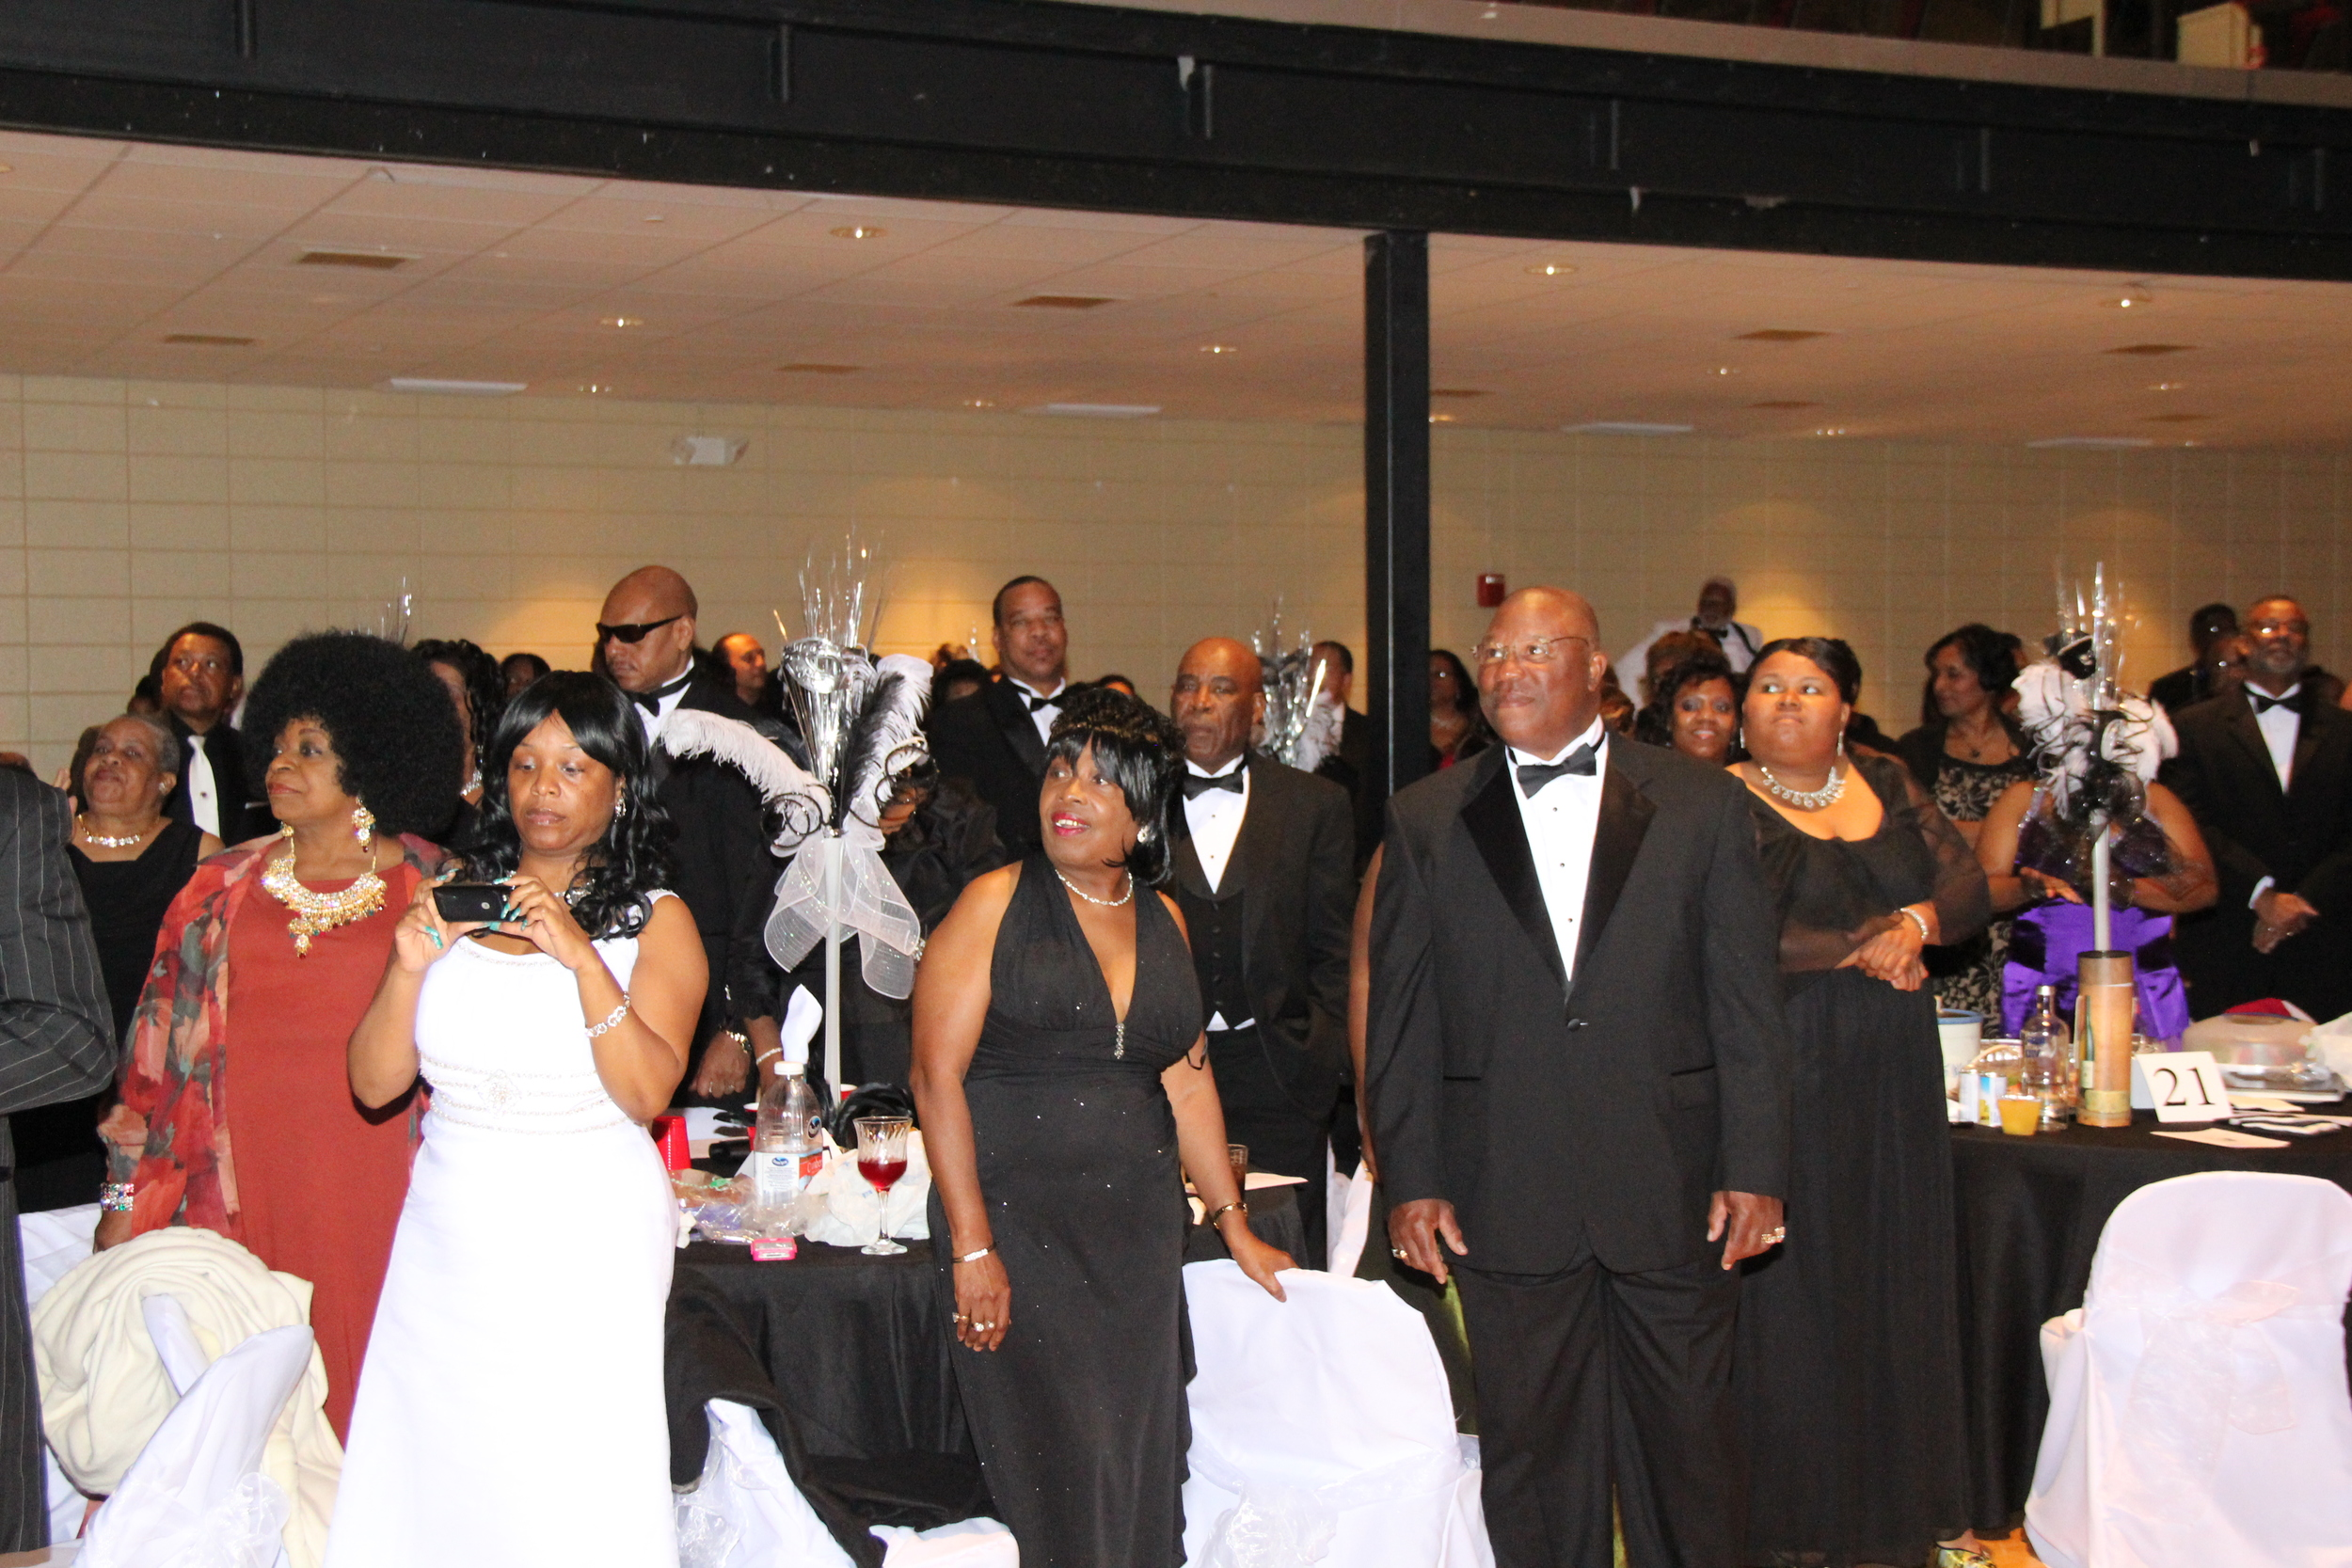 Second Lines MR Ball 2-1-2014 980.JPG